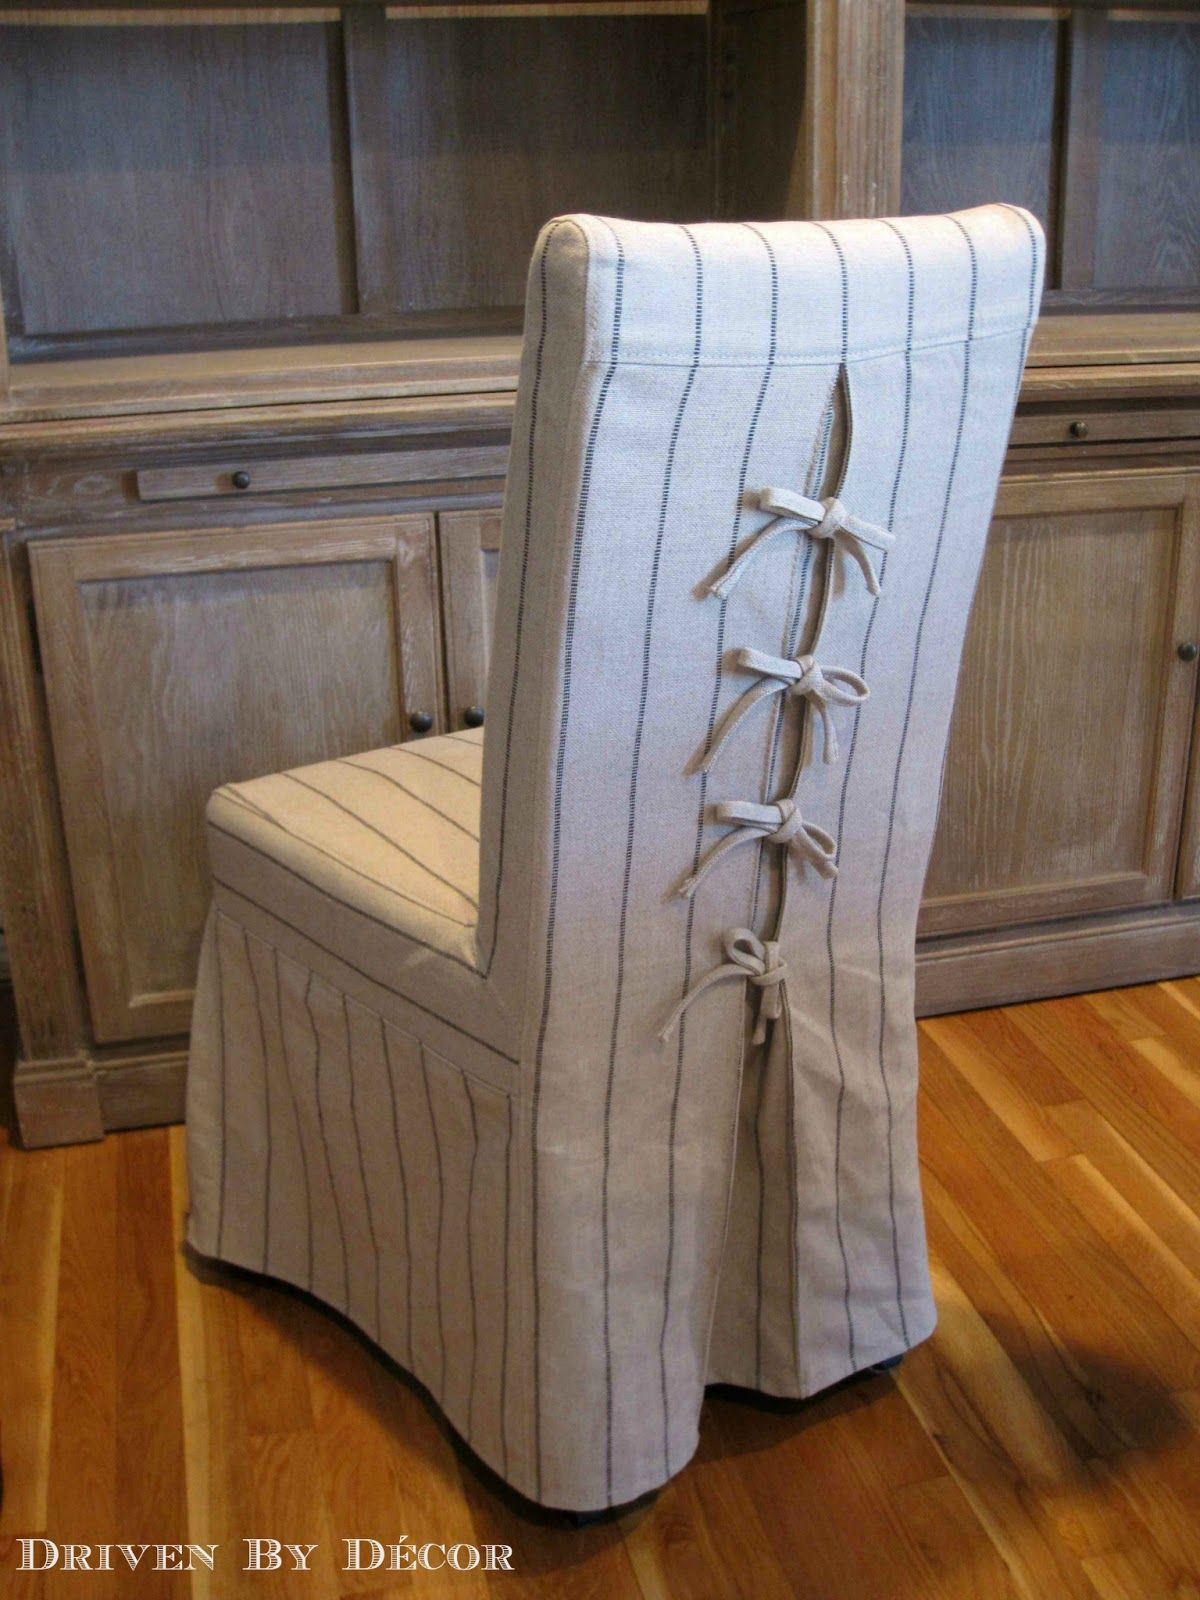 Dress Up Your Dining Chairs: Corseted Slipcovers   Driven By Decor